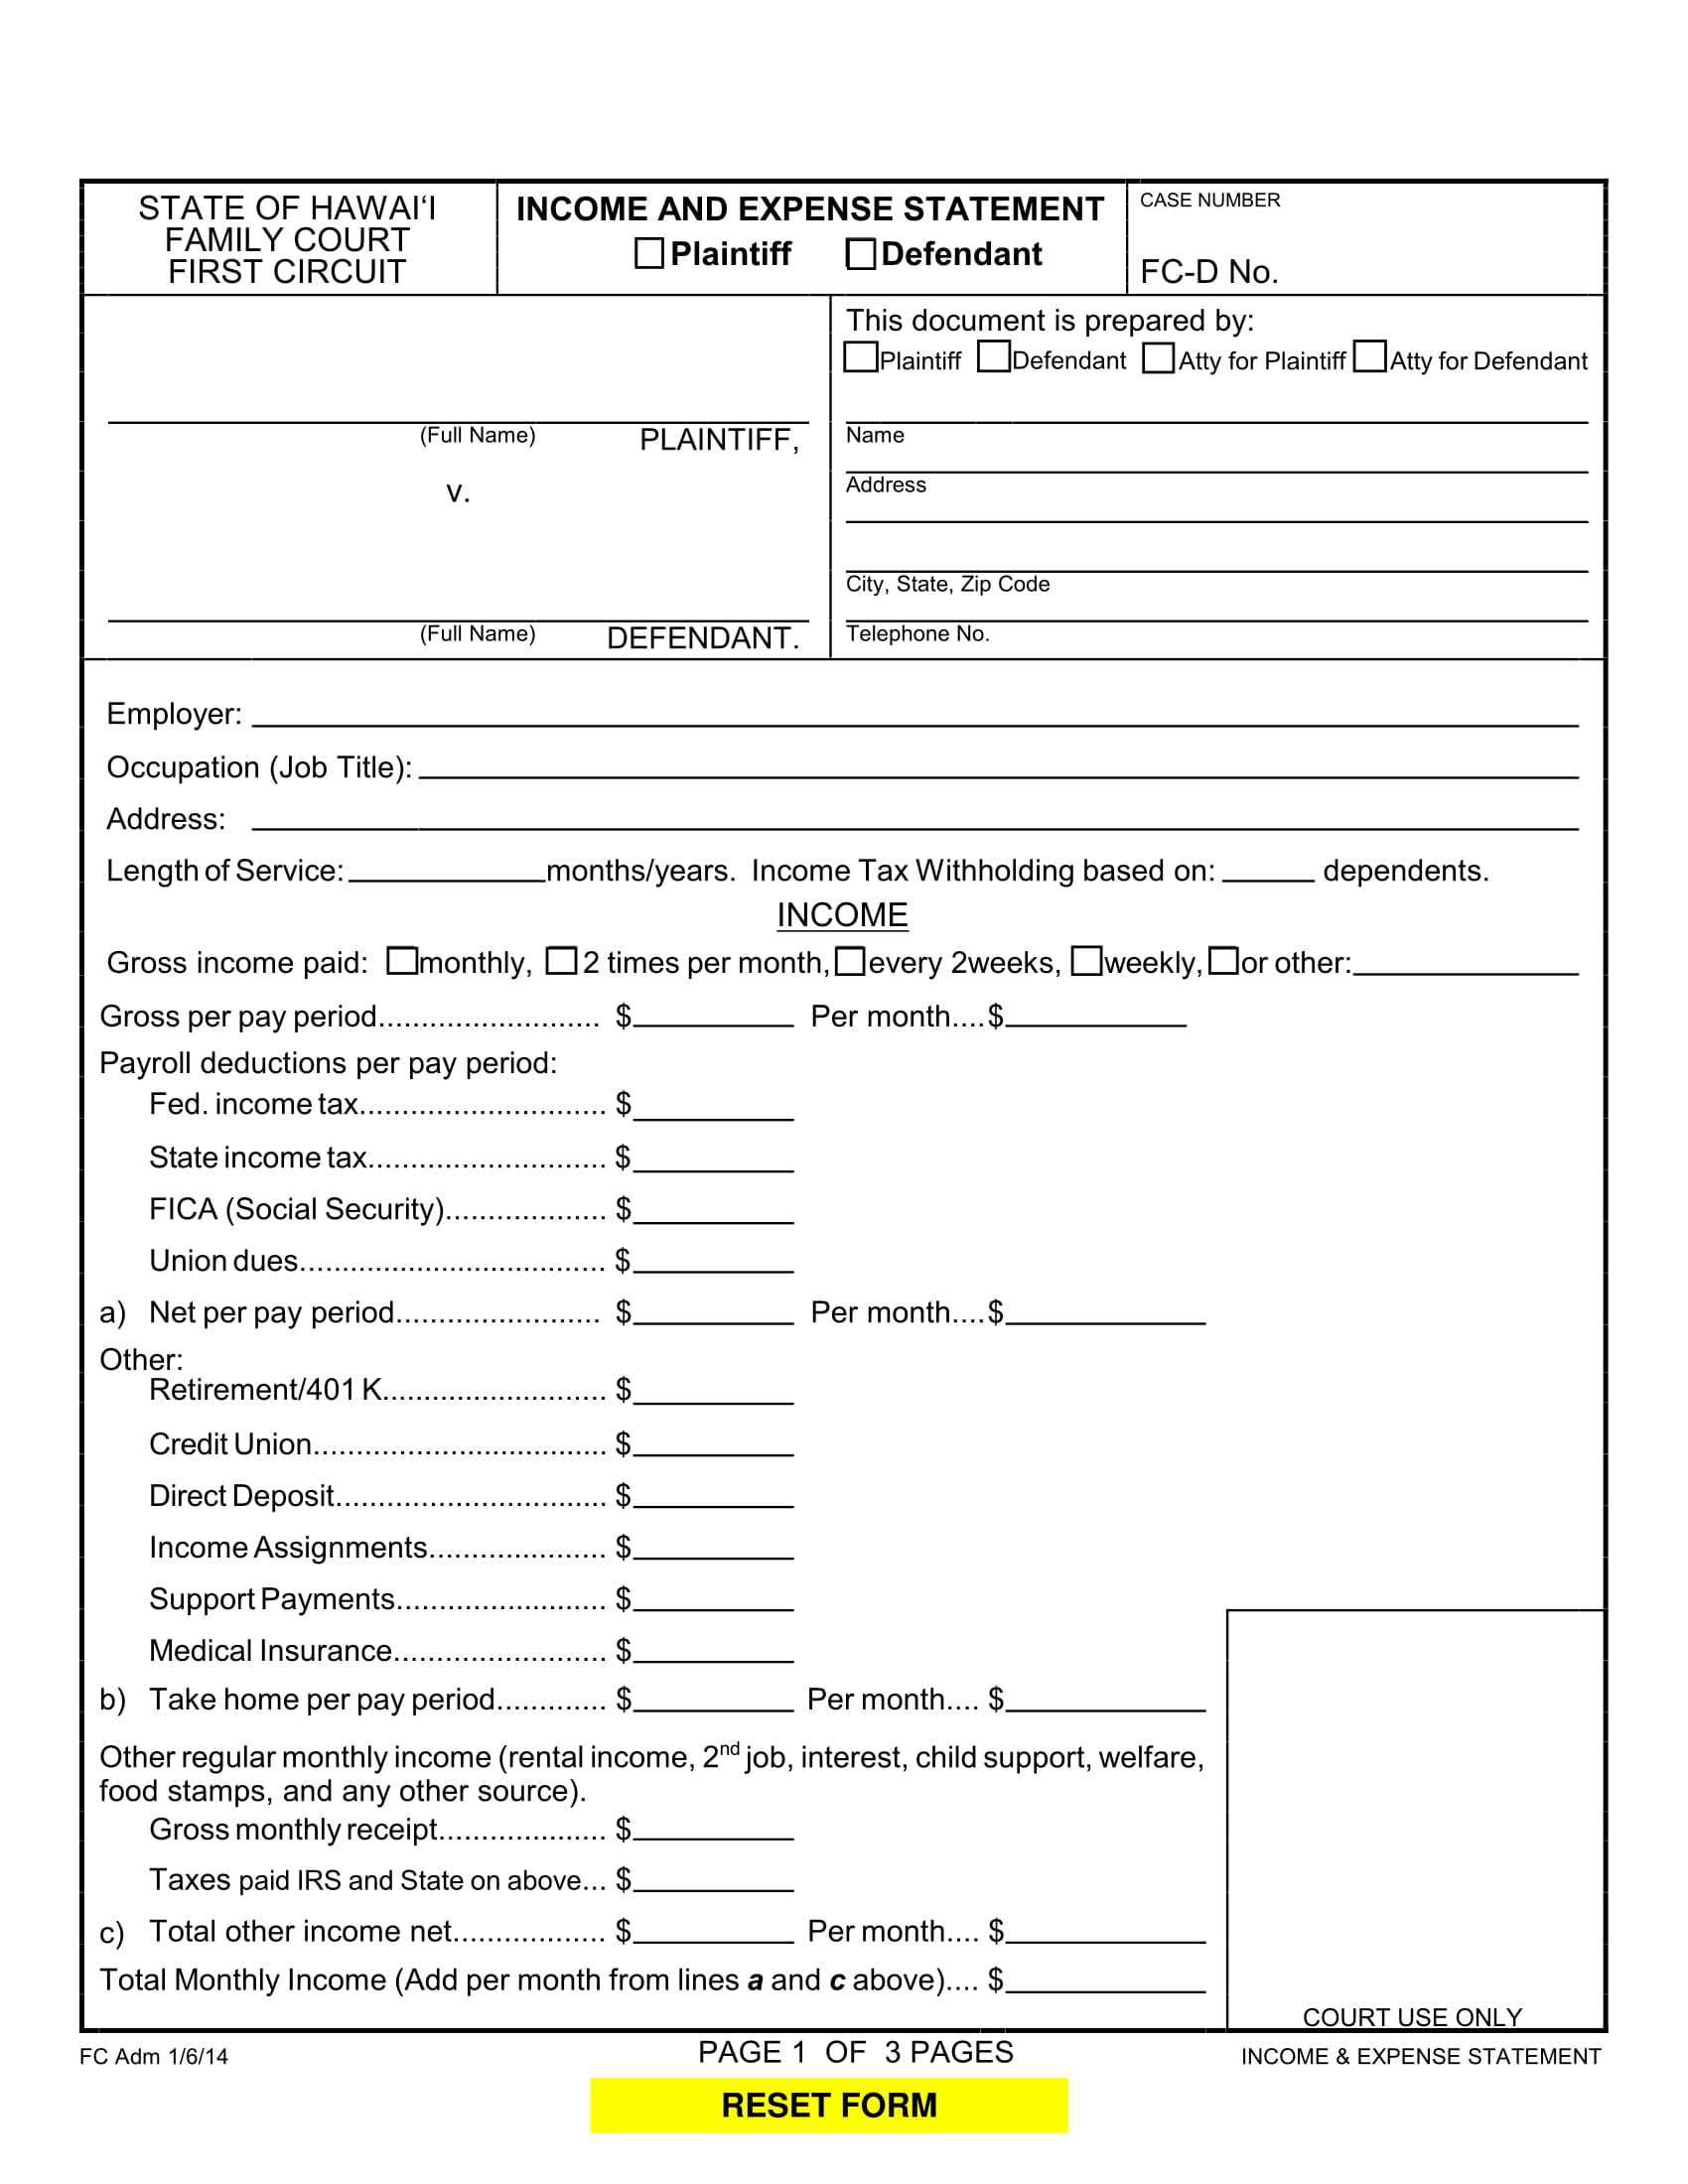 income and expense statement form 1